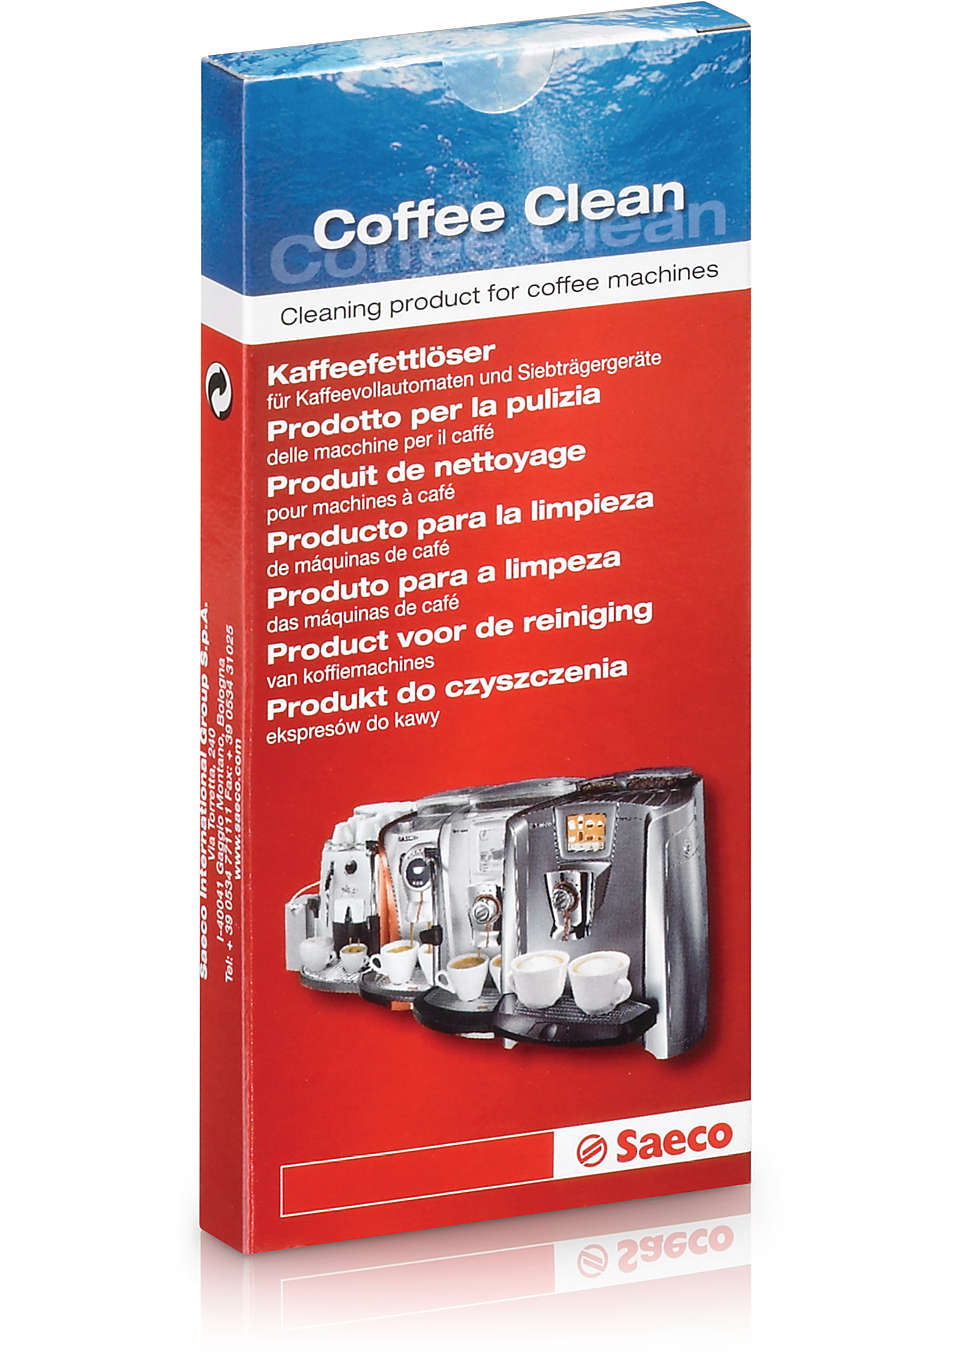 Coffee Clean — Cleaning product